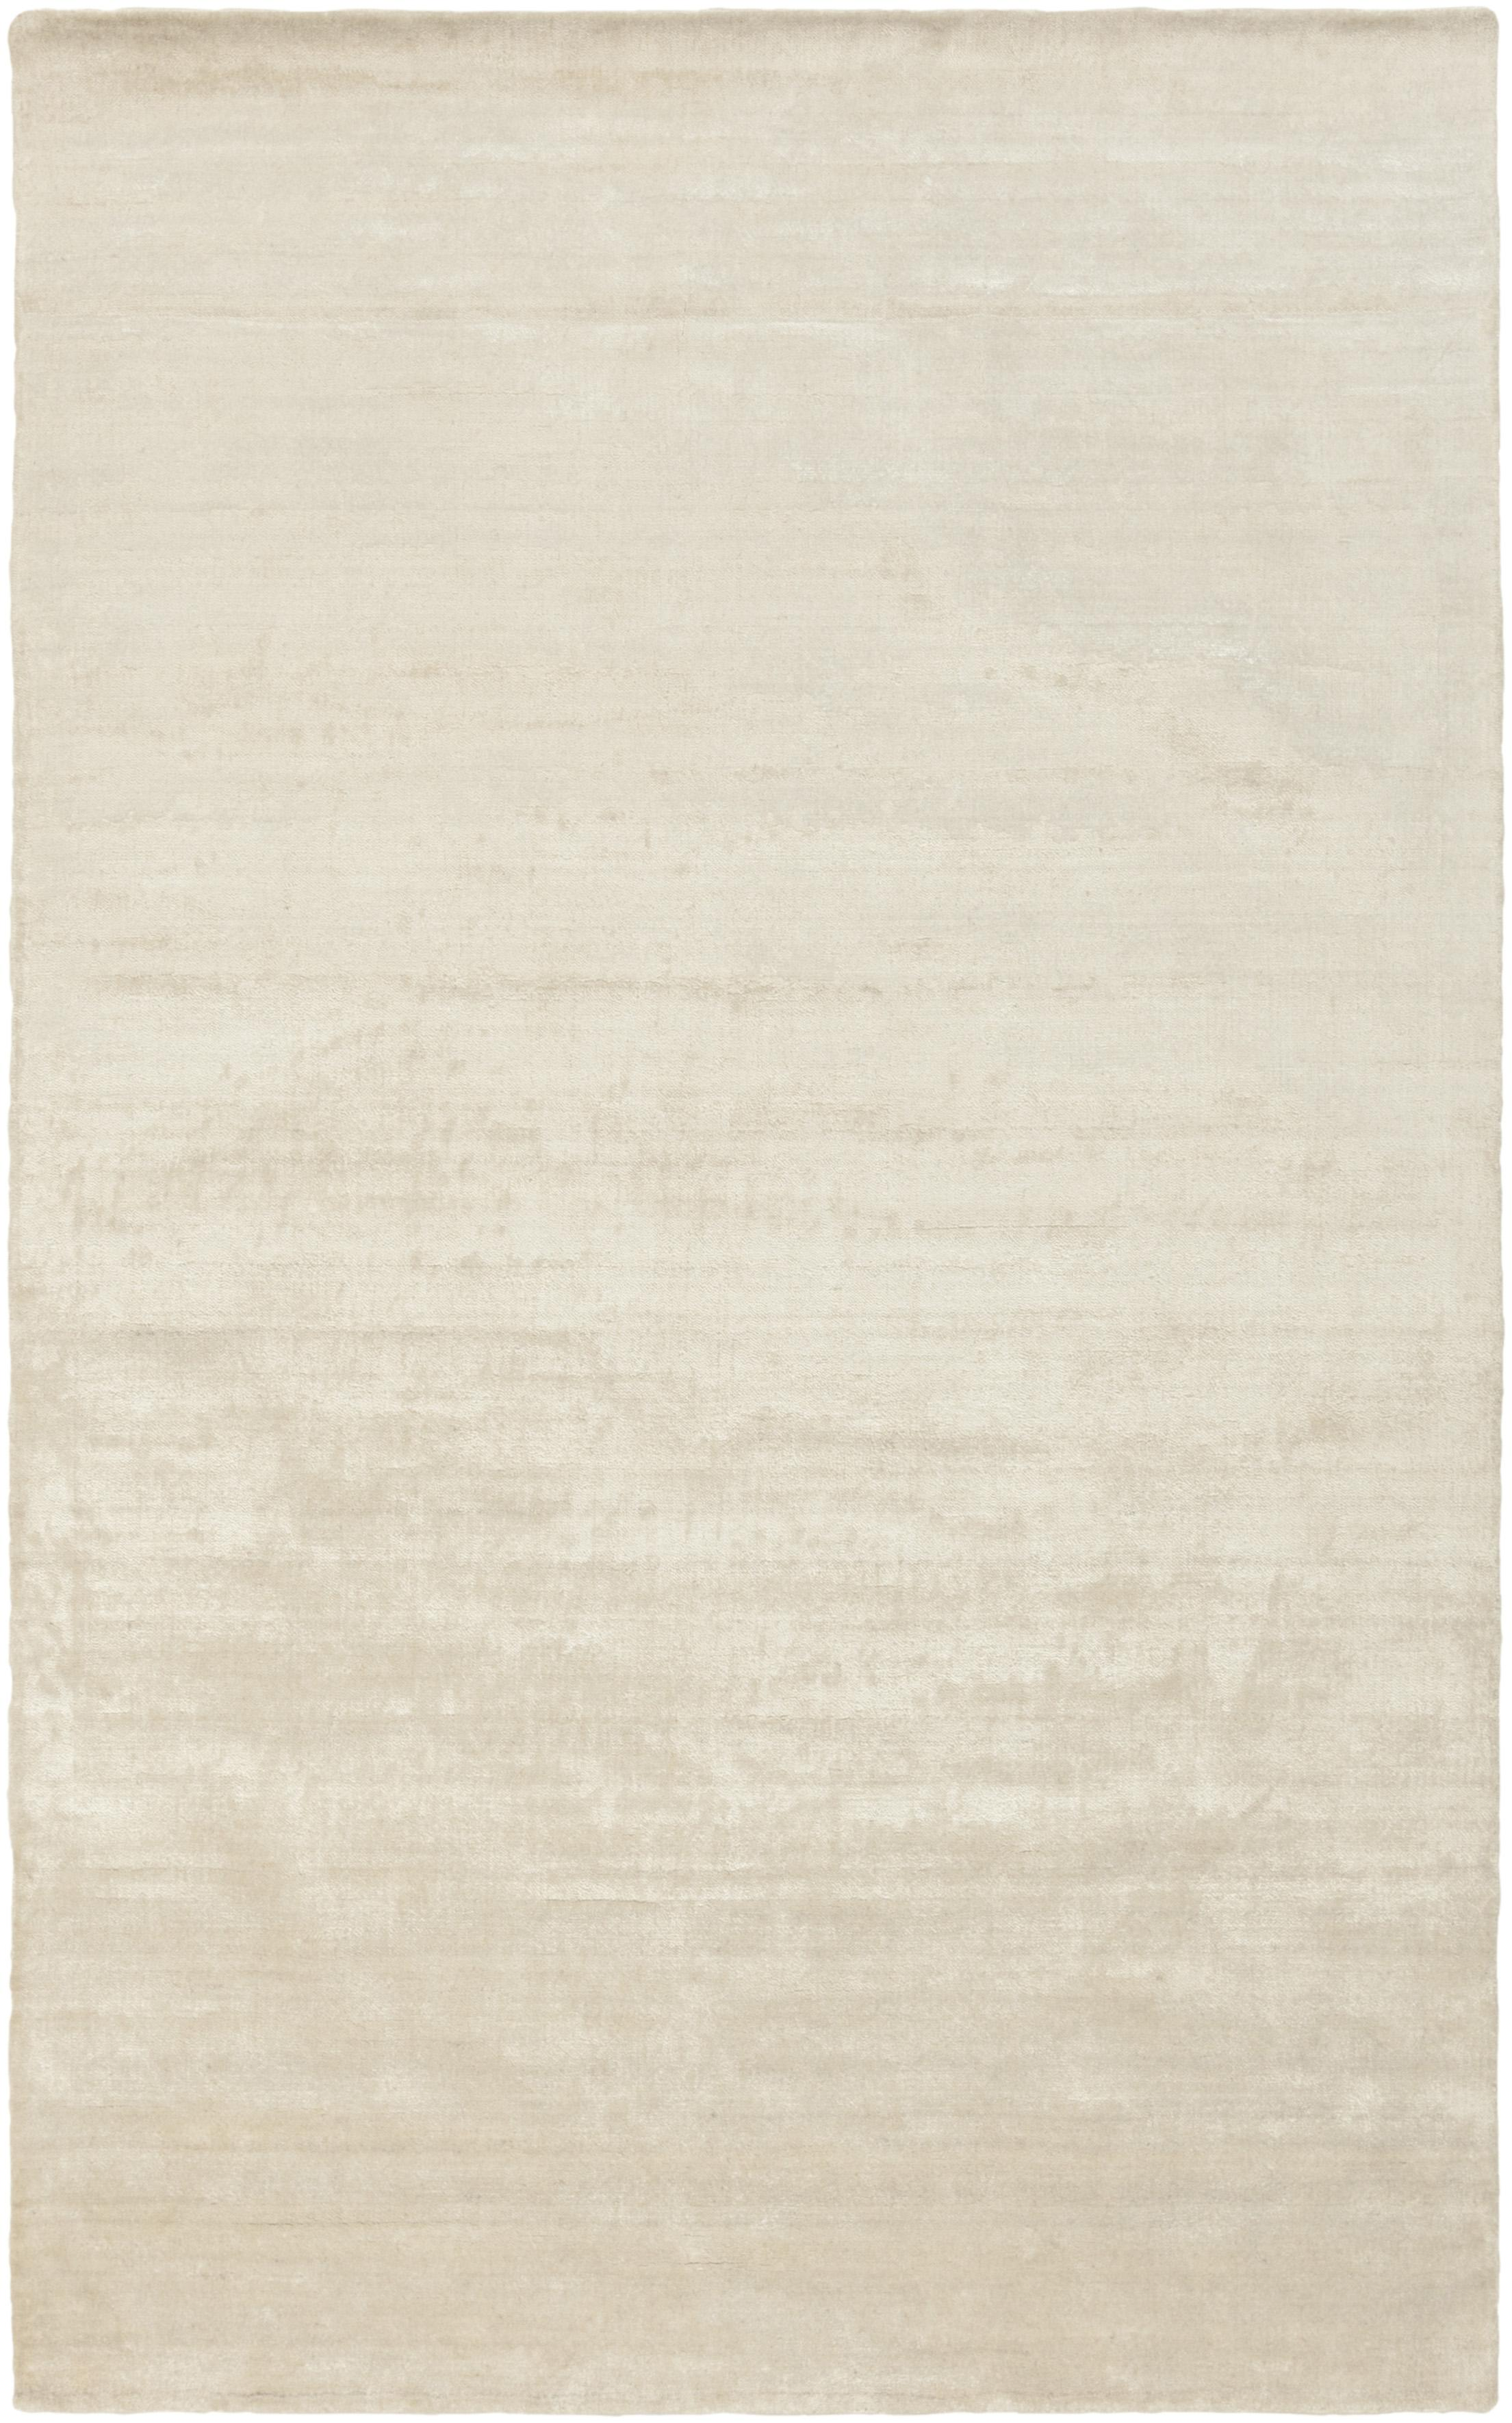 Surya Rugs Pure 8' x 10' - Item Number: PUR3003-810